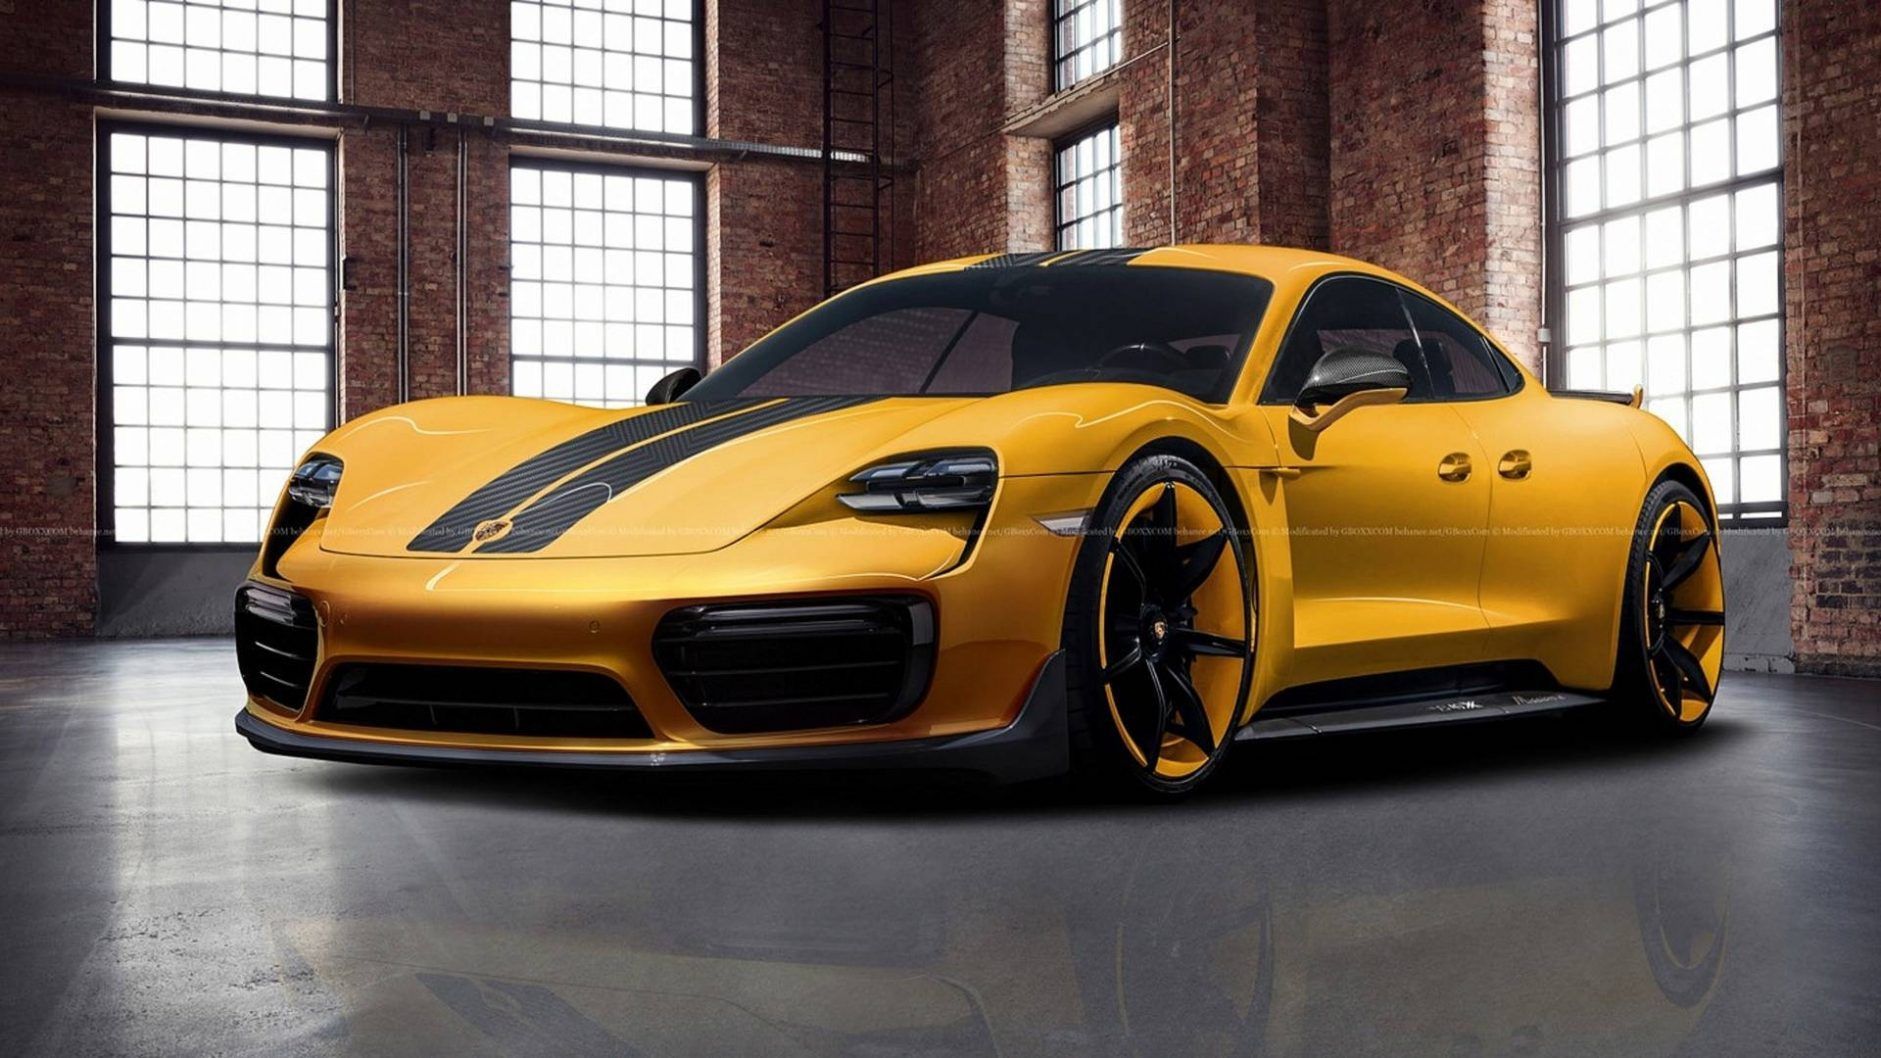 2020 Porsche Taycan Review Price Styling Interior Release Date Photos